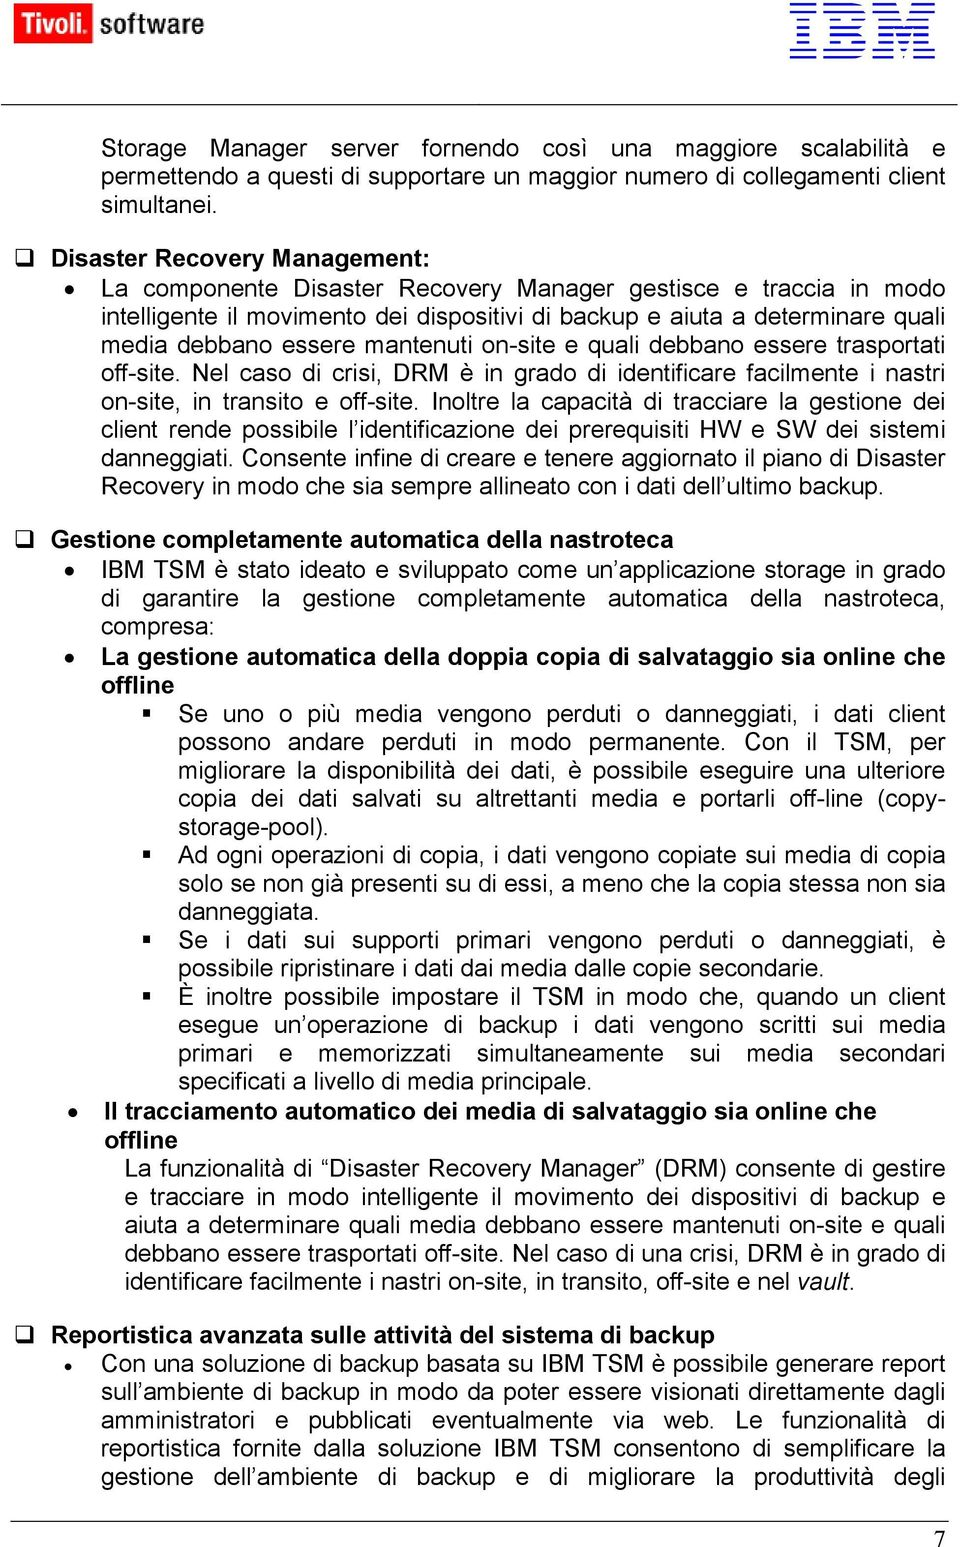 mantenuti on-site e quali debbano essere trasportati off-site. Nel caso di crisi, DRM è in grado di identificare facilmente i nastri on-site, in transito e off-site.